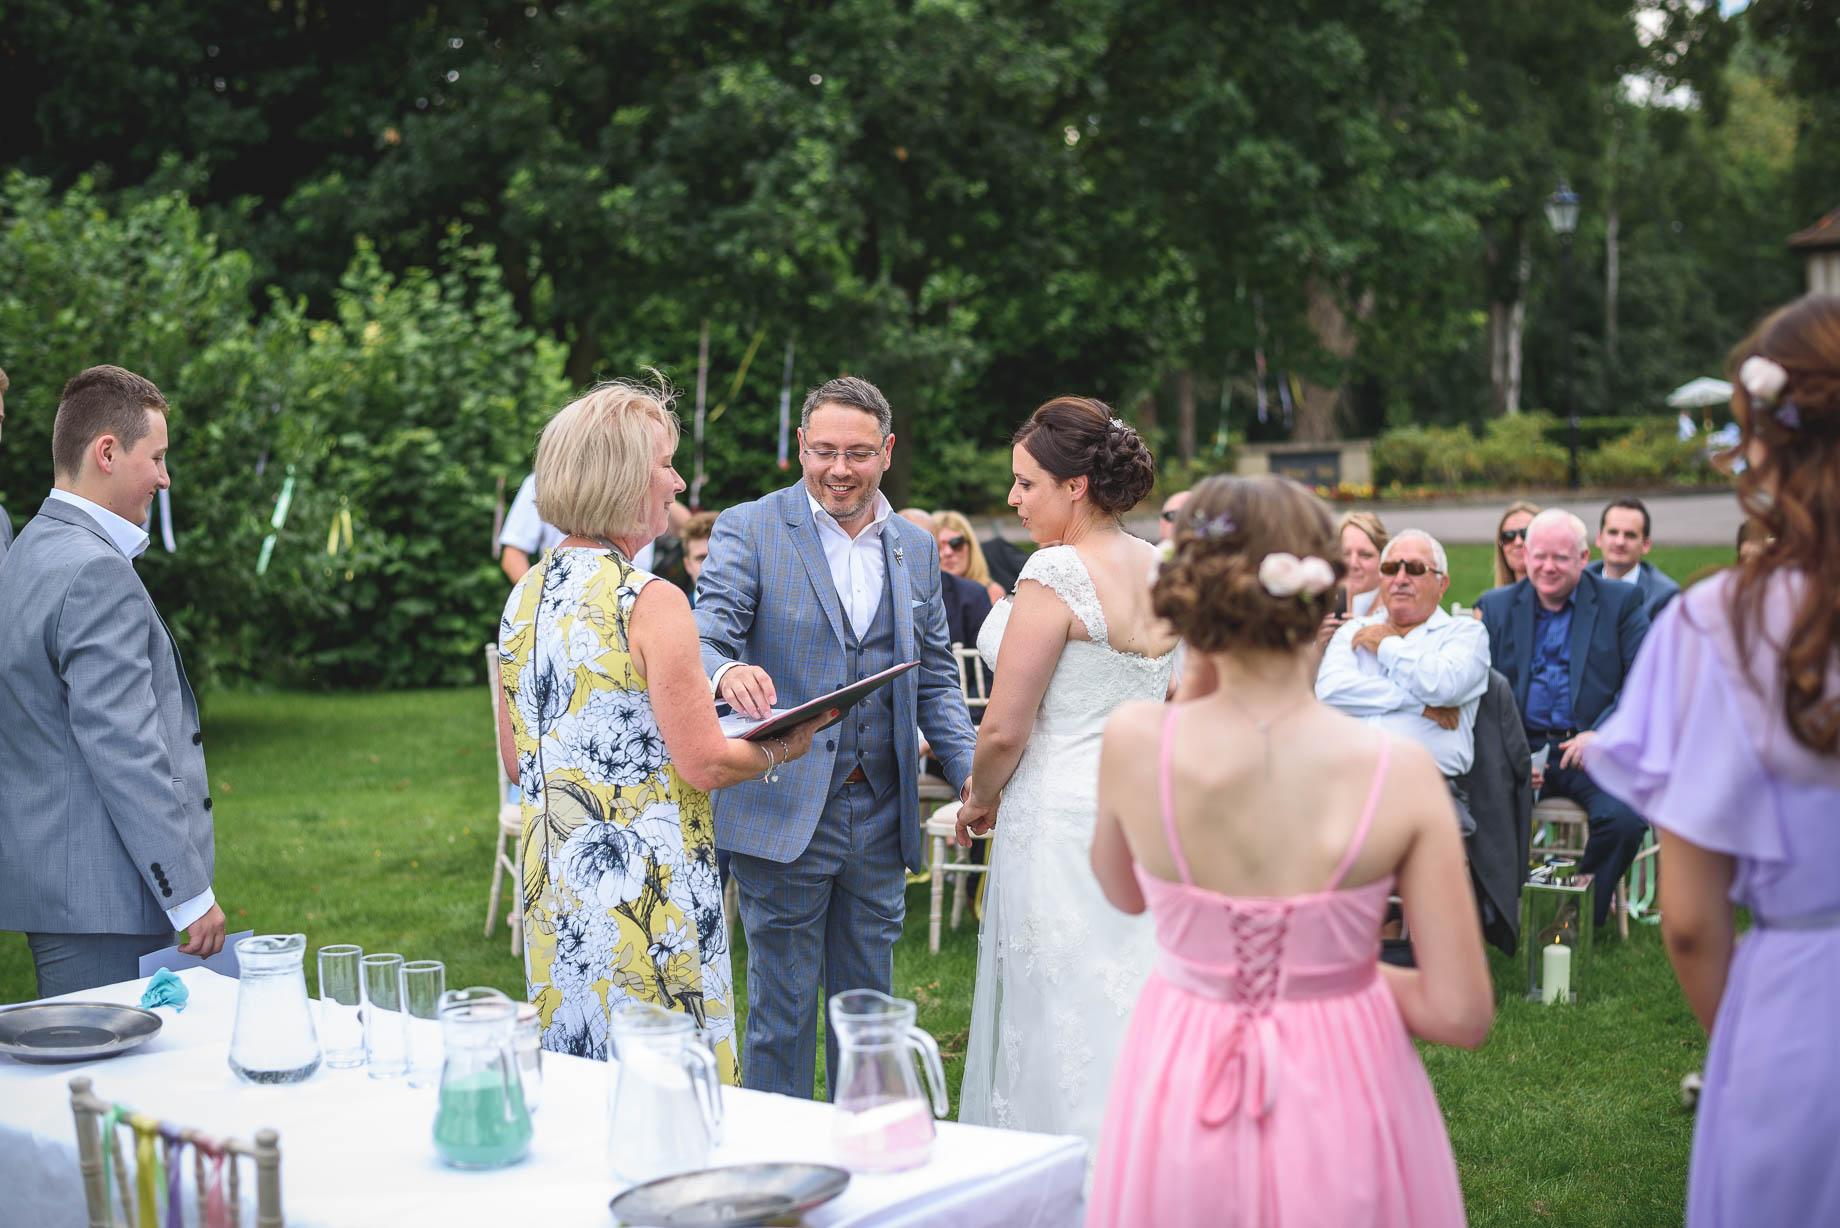 Luton Hoo wedding photography by Guy Collier Photography - Lauren and Gem (65 of 178)